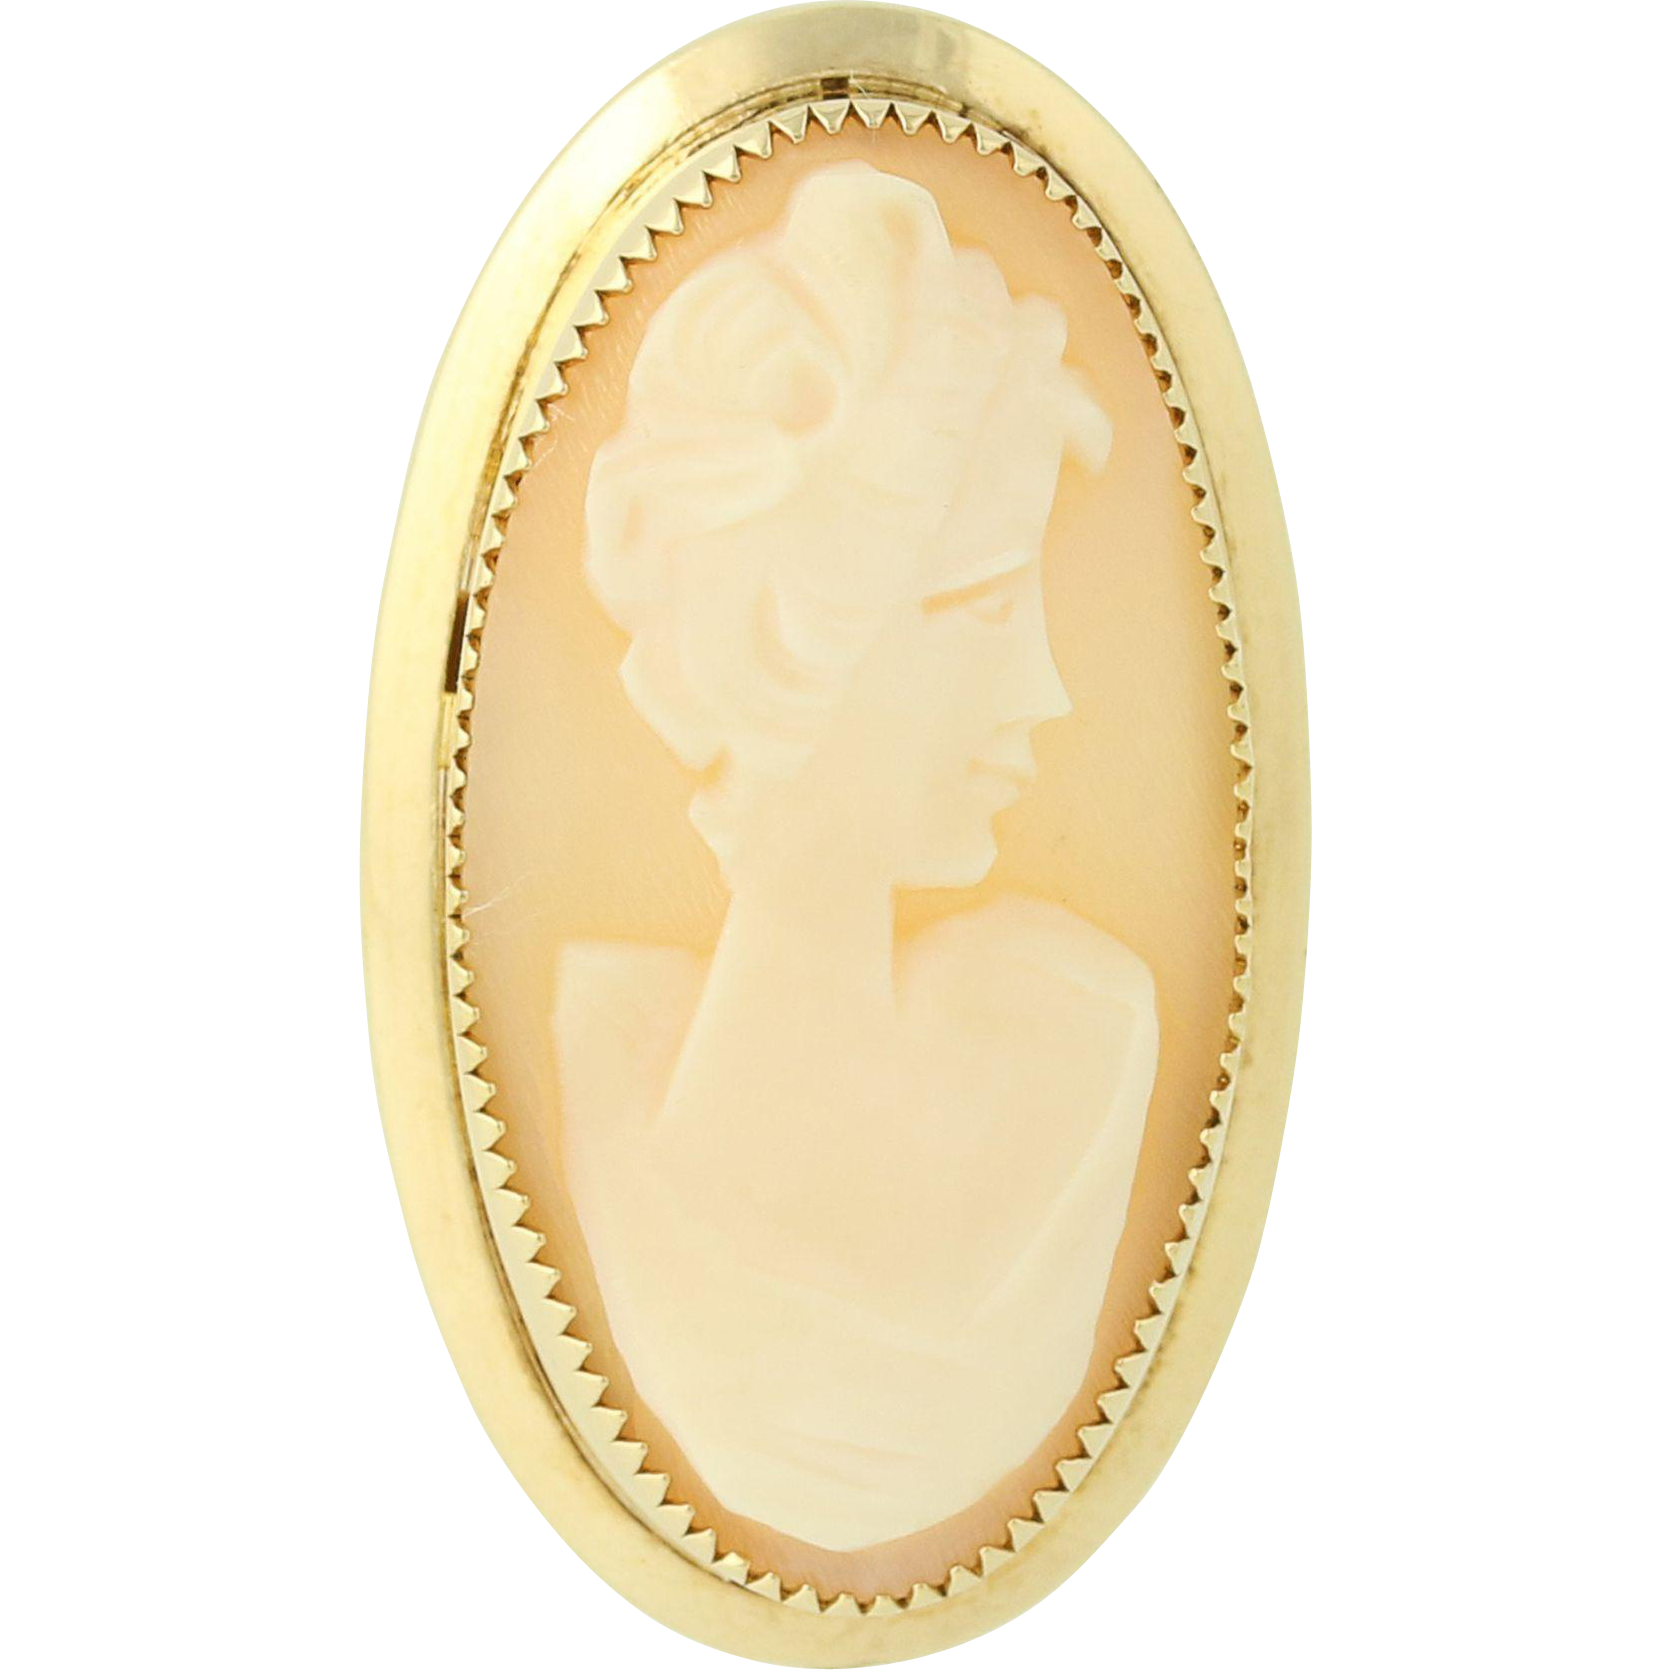 Vintage Cameo Brooch - Carved Shell 1/20 12k Gold Filled Female Bust Pin